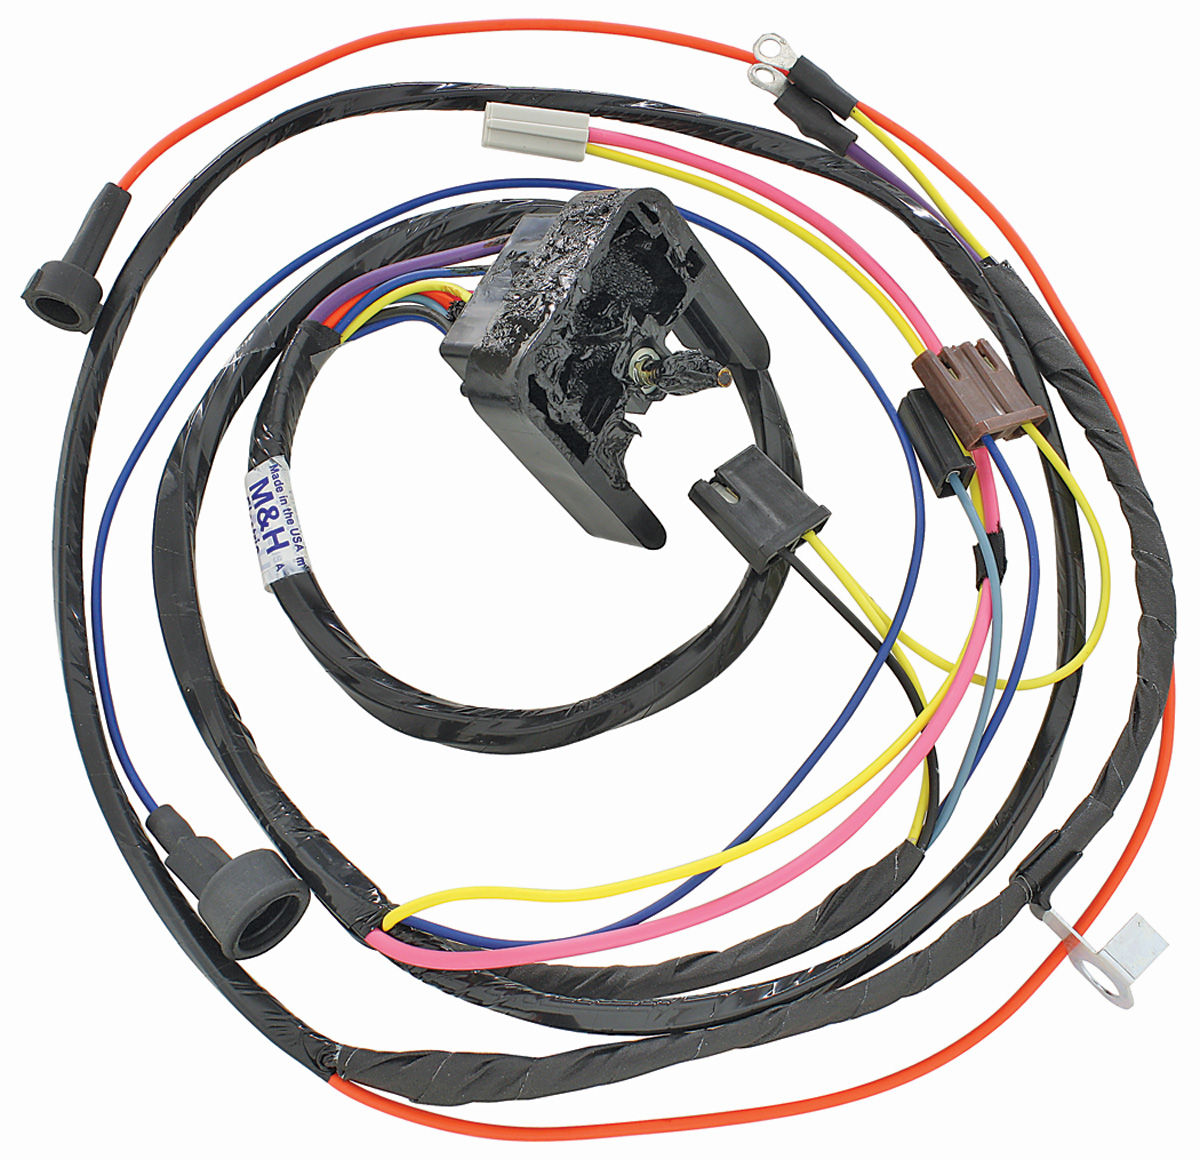 chevelle wiring diagram 1972 2008 ford e250 radio m andh 1968 69 engine harness 396 hei w warning